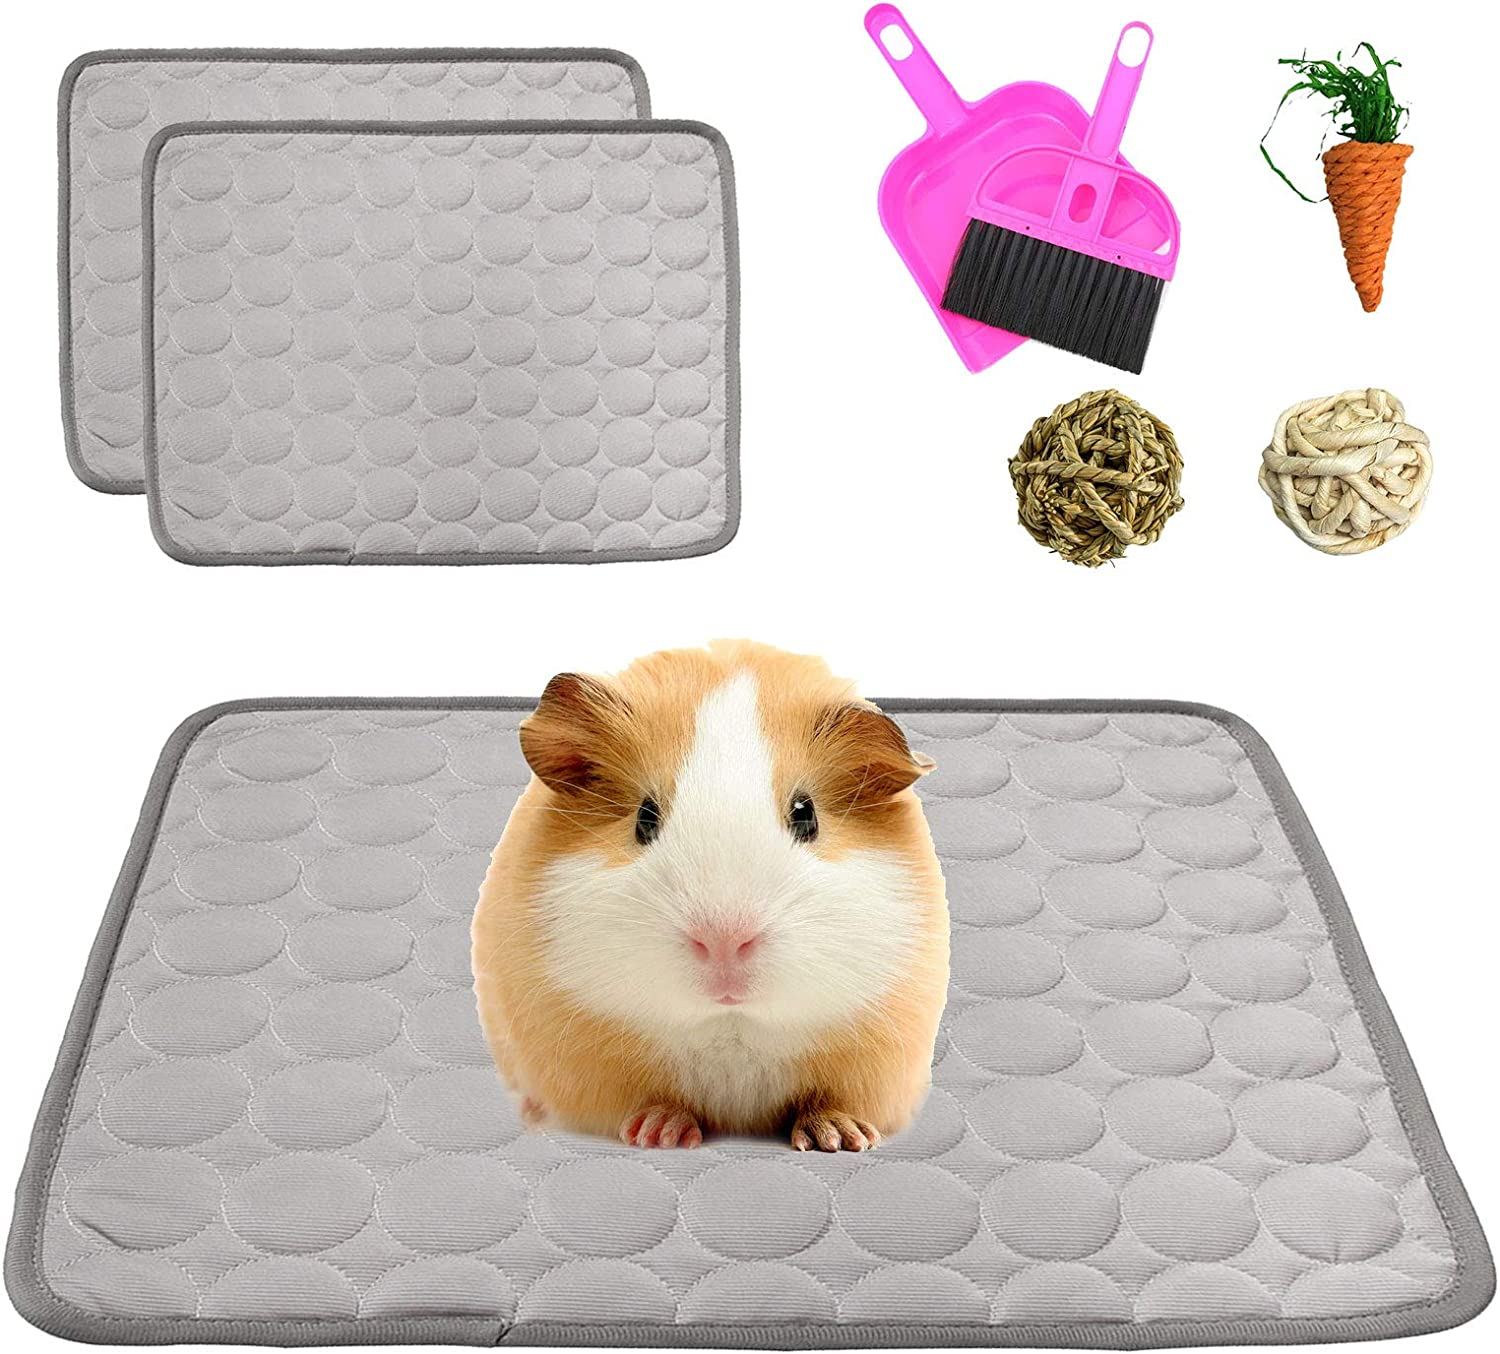 kathson Guinea Pig Cage Liners, 2 Pack Washable Pee Pads Absorbent Non-Slip Reusable Bedding Mats for Guinea Pig Rabbit Bunny Hamster Cat Puppy Small Animals